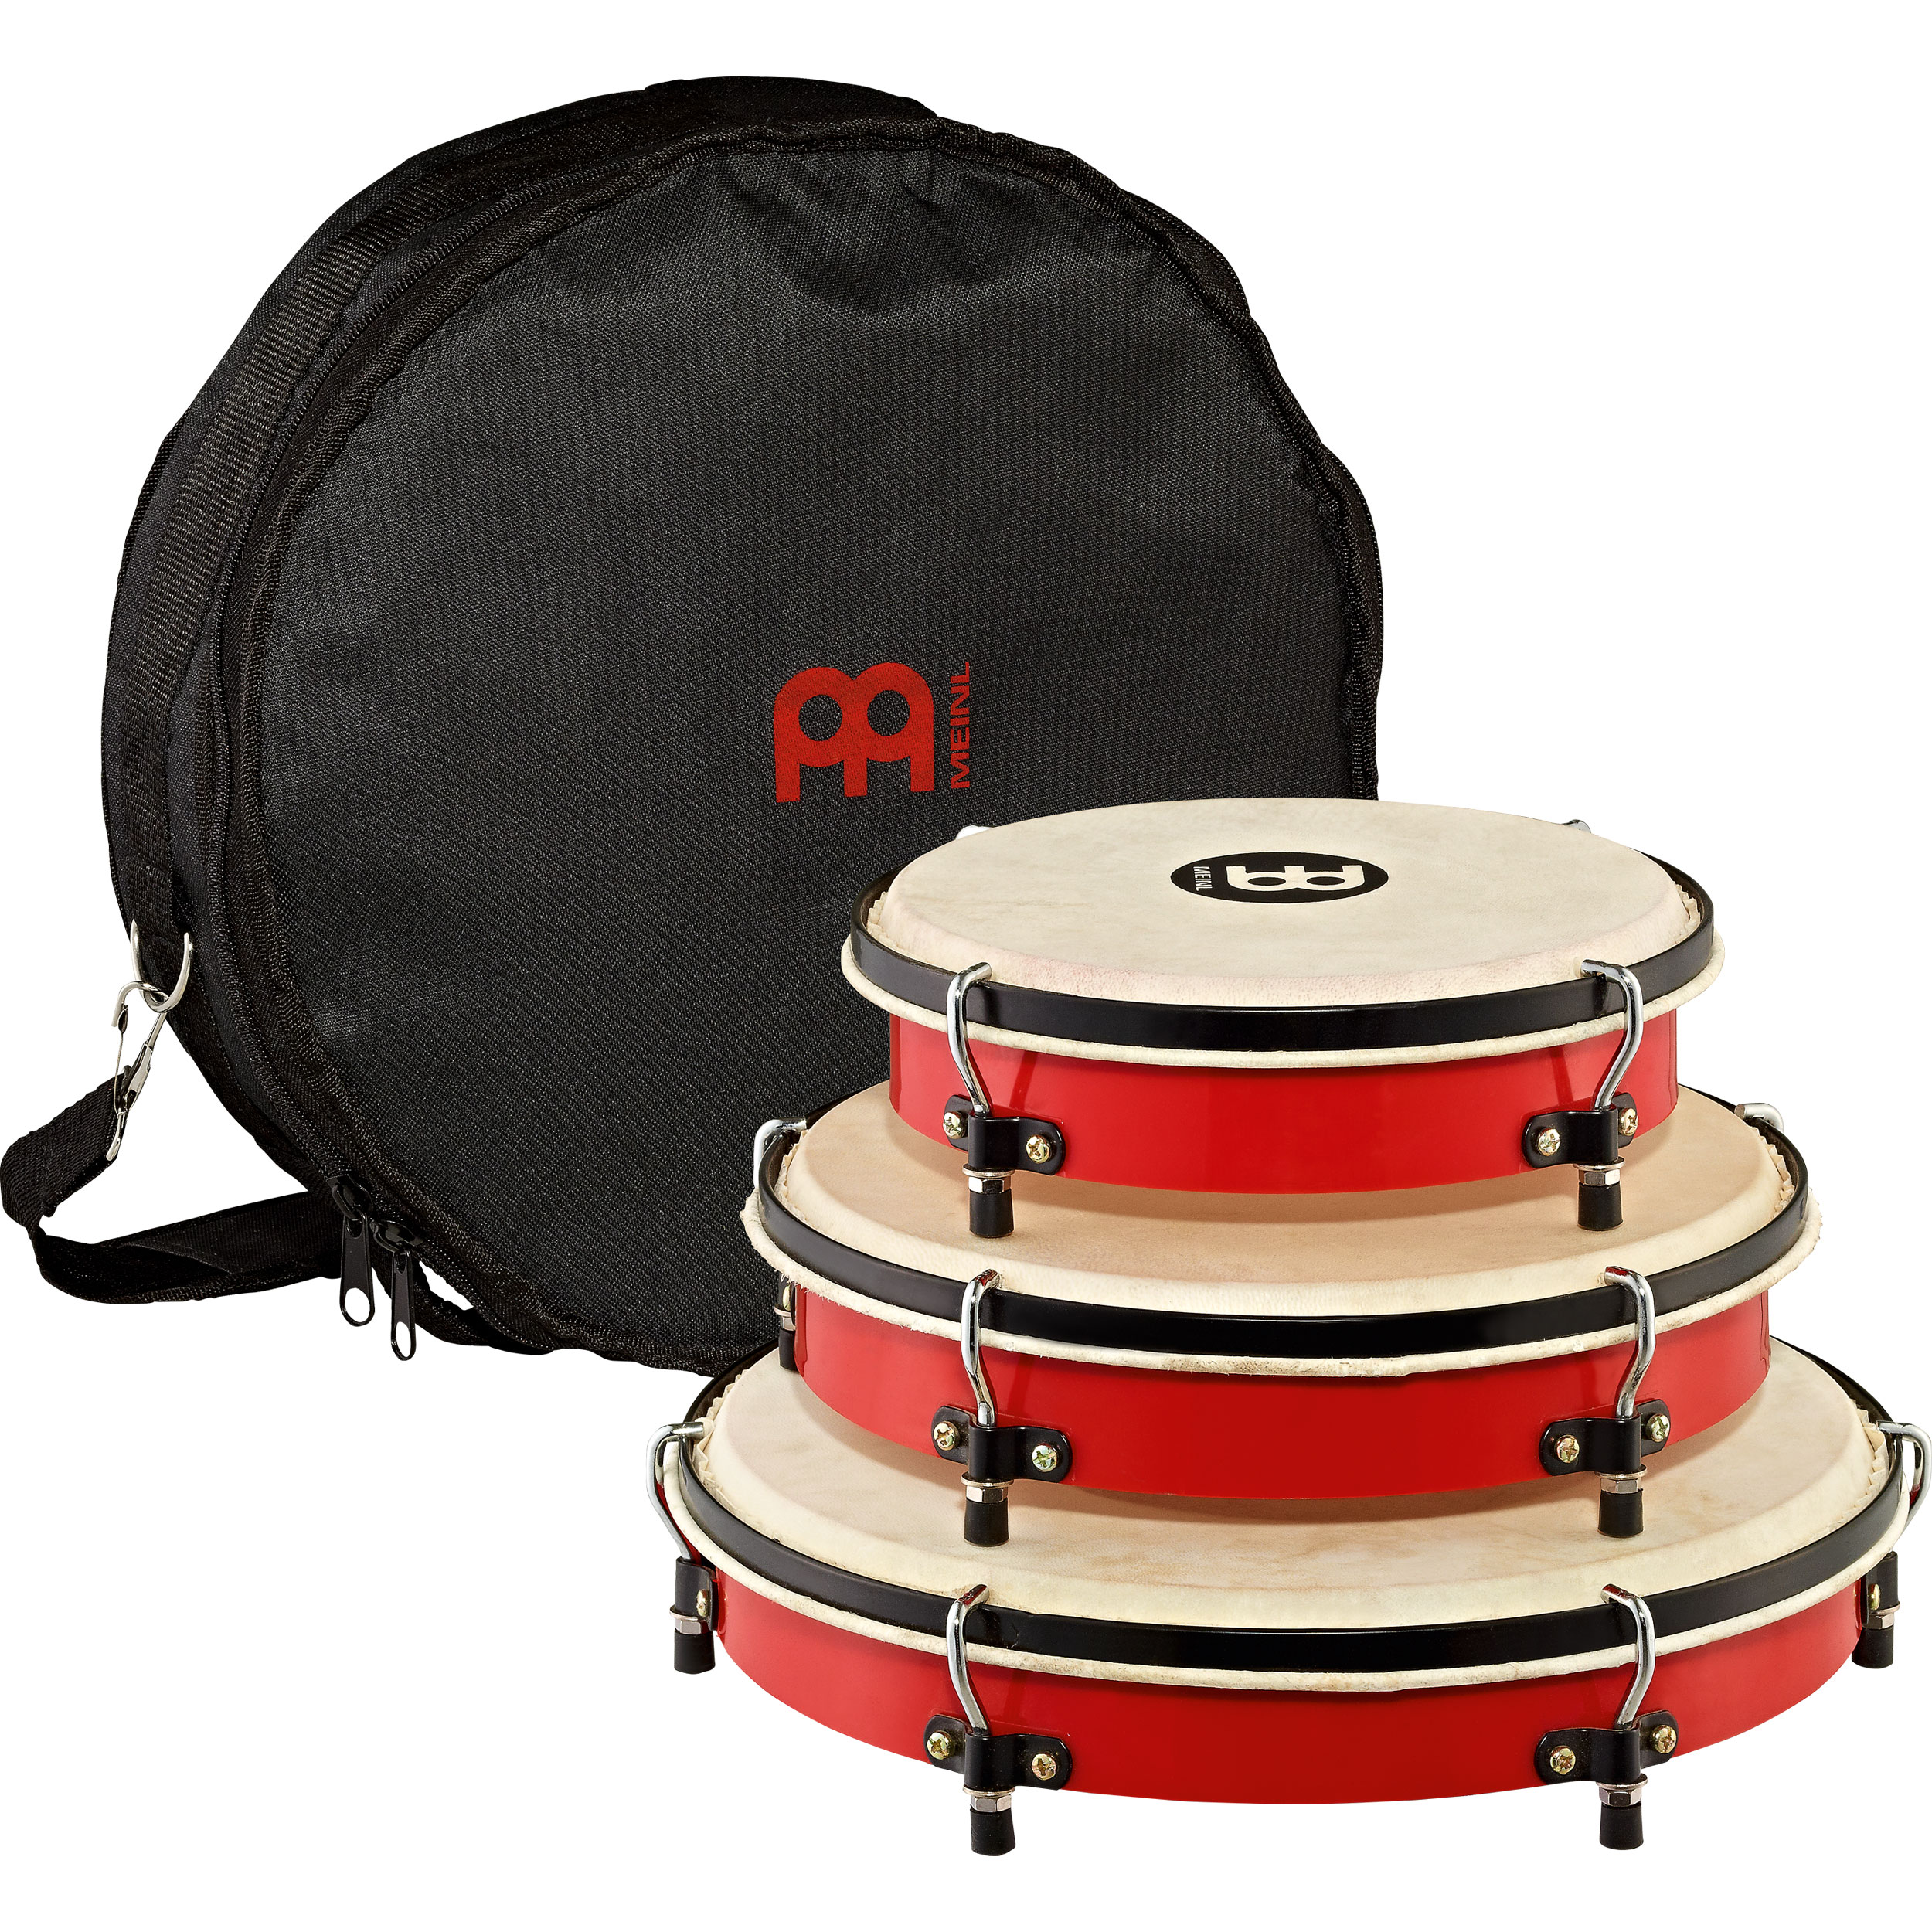 "Meinl Plenera Set: 8"", 10"" & 12"" ABS Frames"